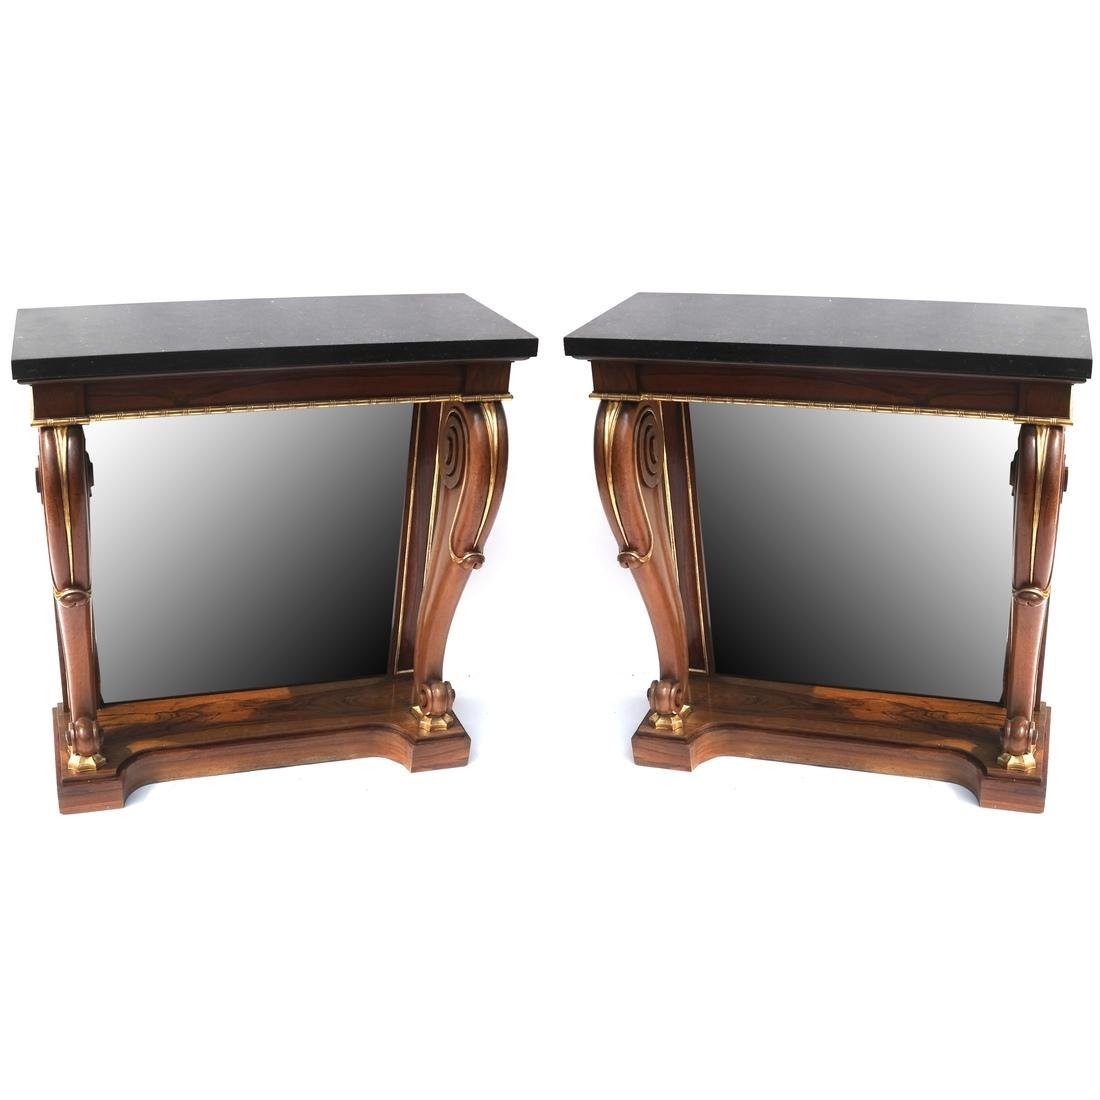 Pair of Regency Pier Consoles